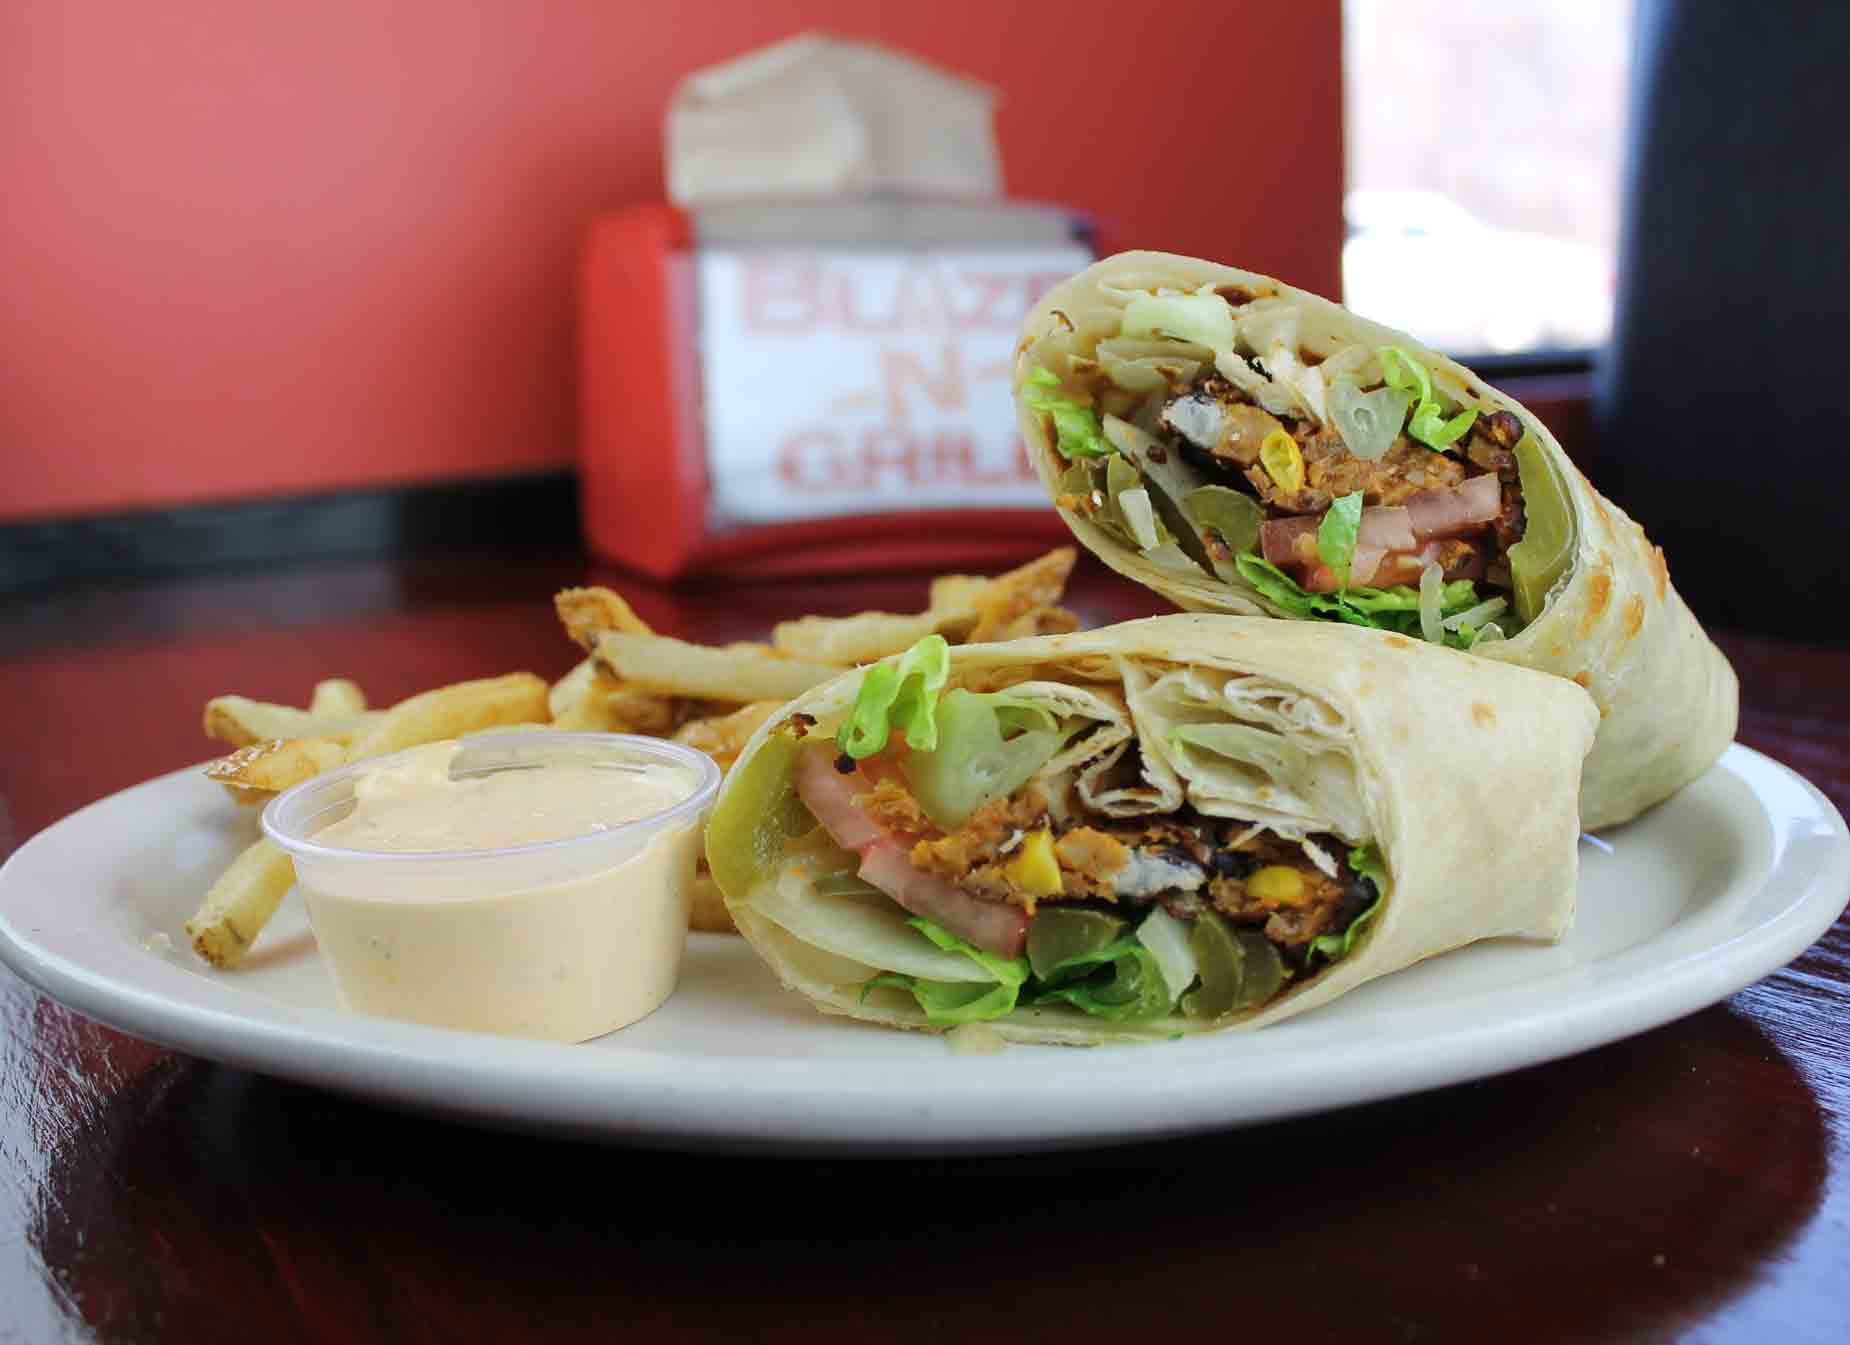 BLACK BEAN CHIPOTLE PHILLY WRAP